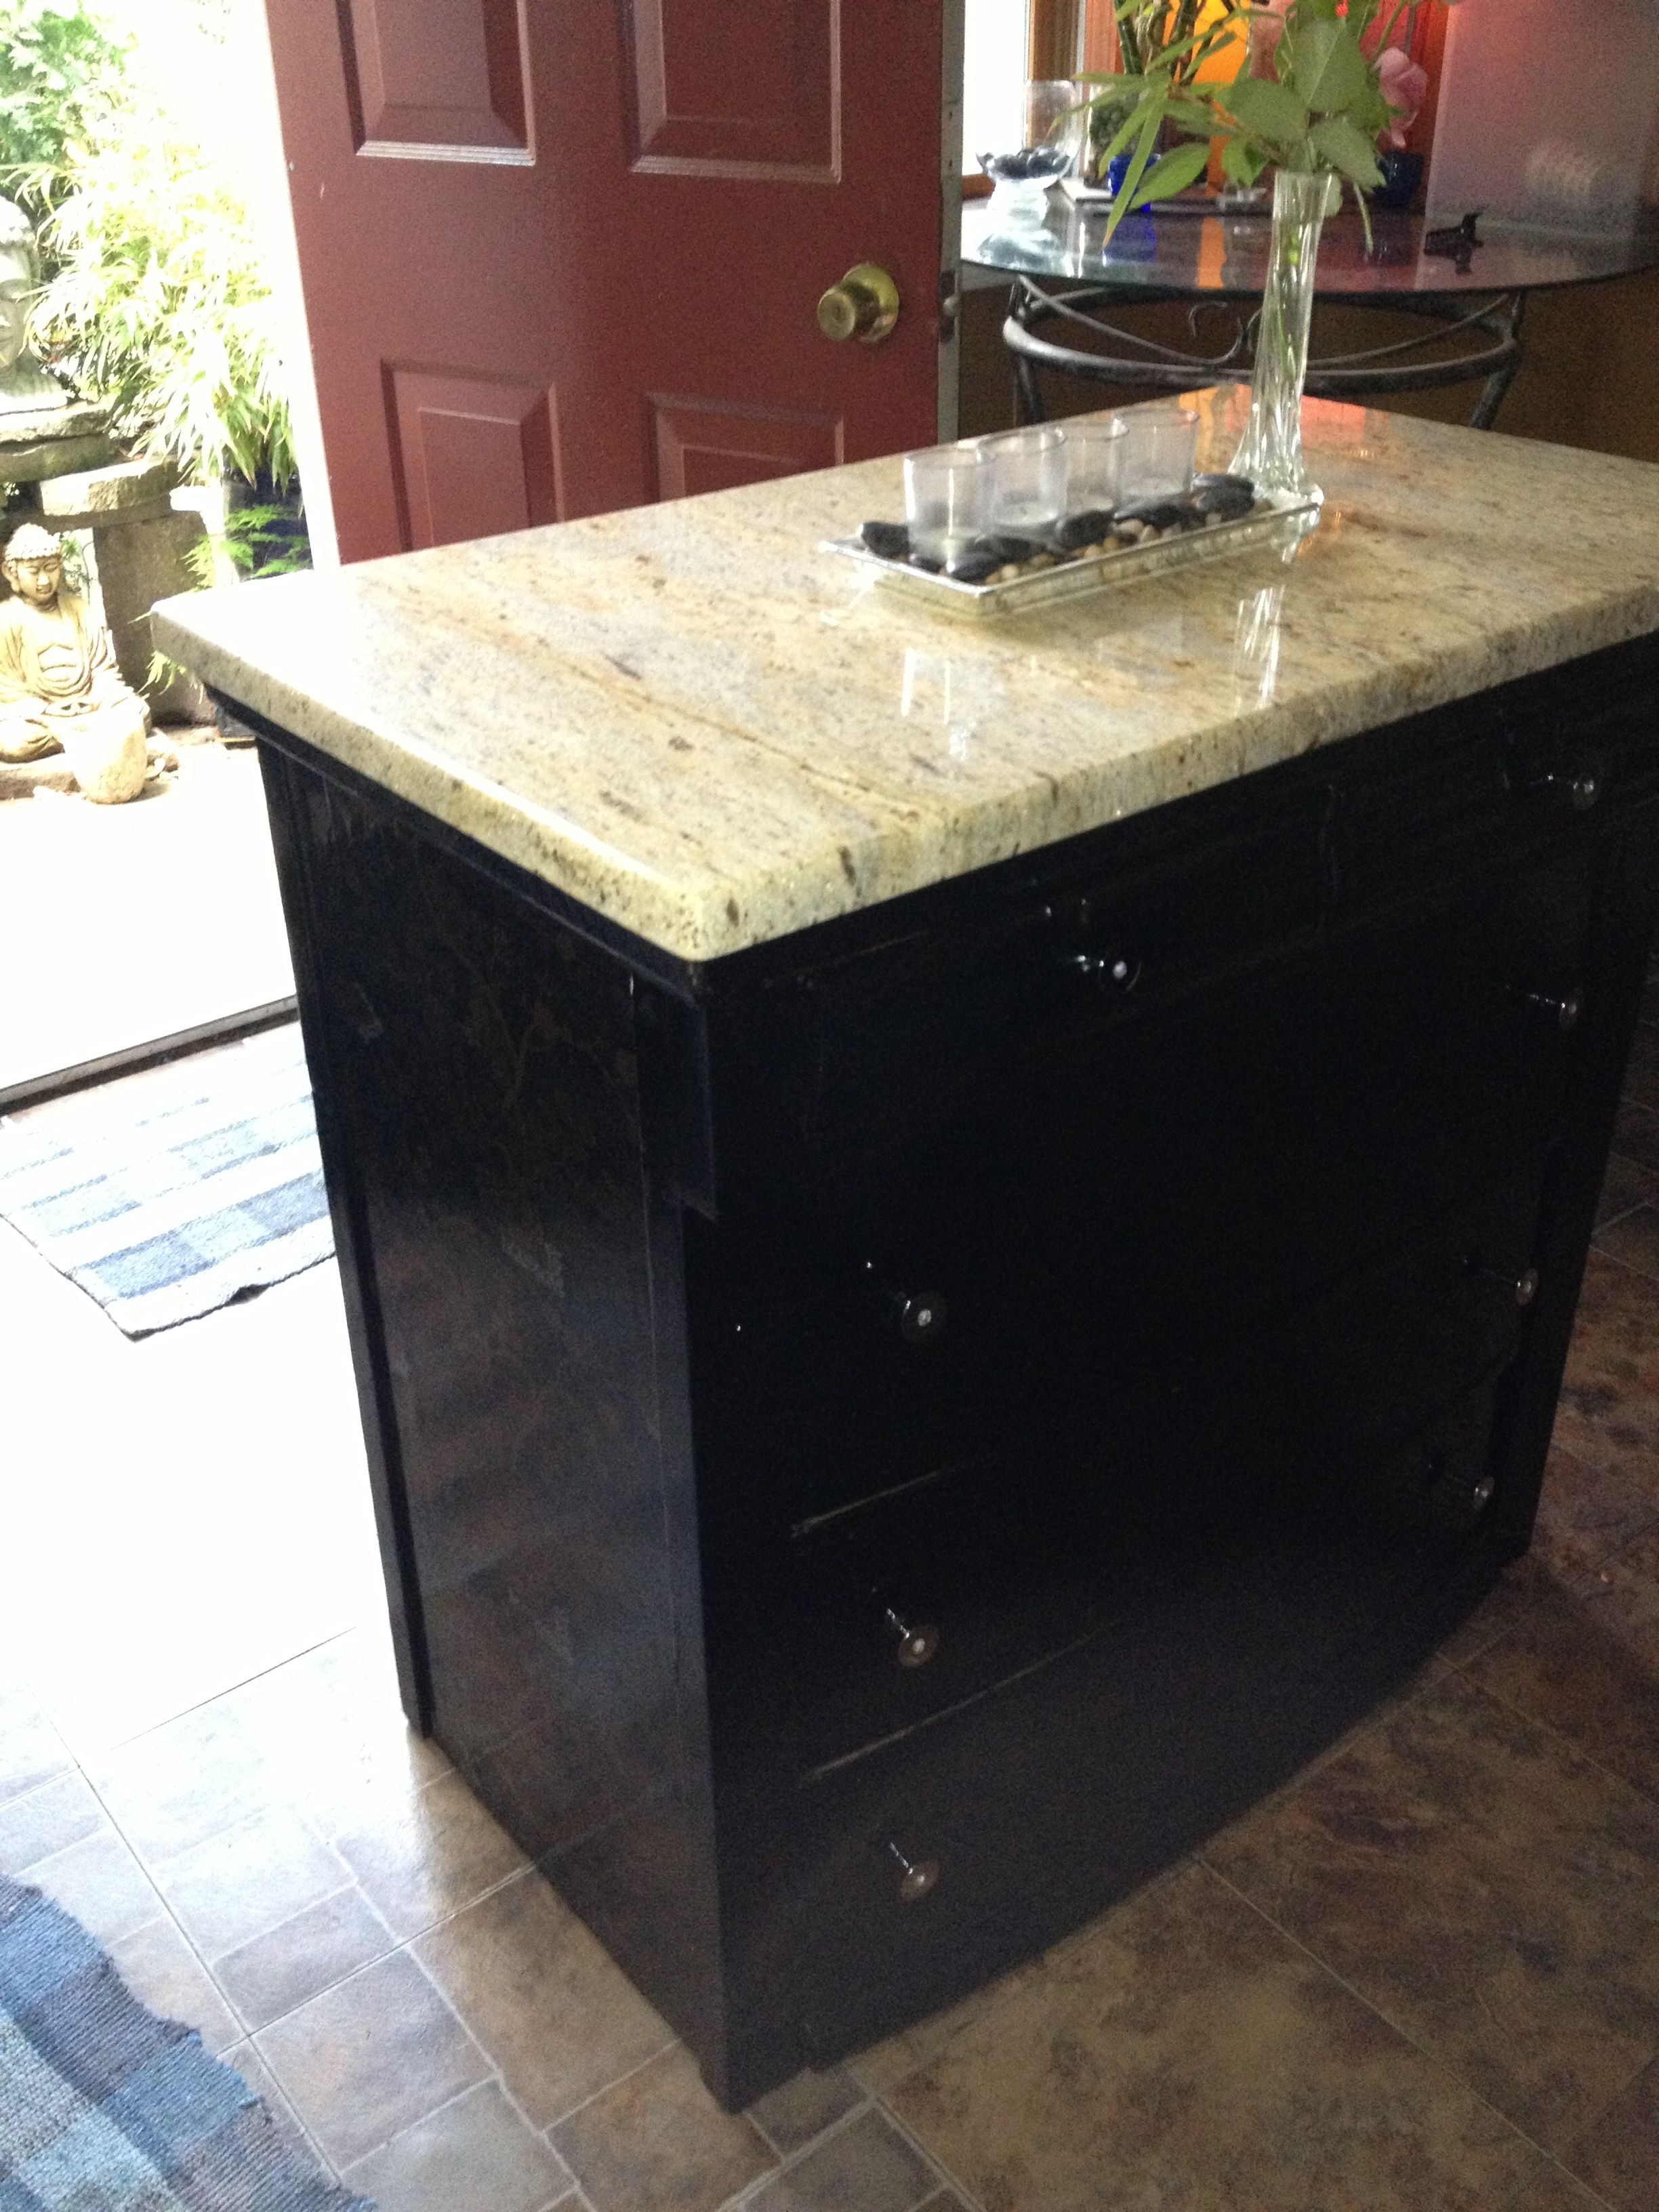 Repurposed Old Dresser Turned Kitchen Island, Spent $270